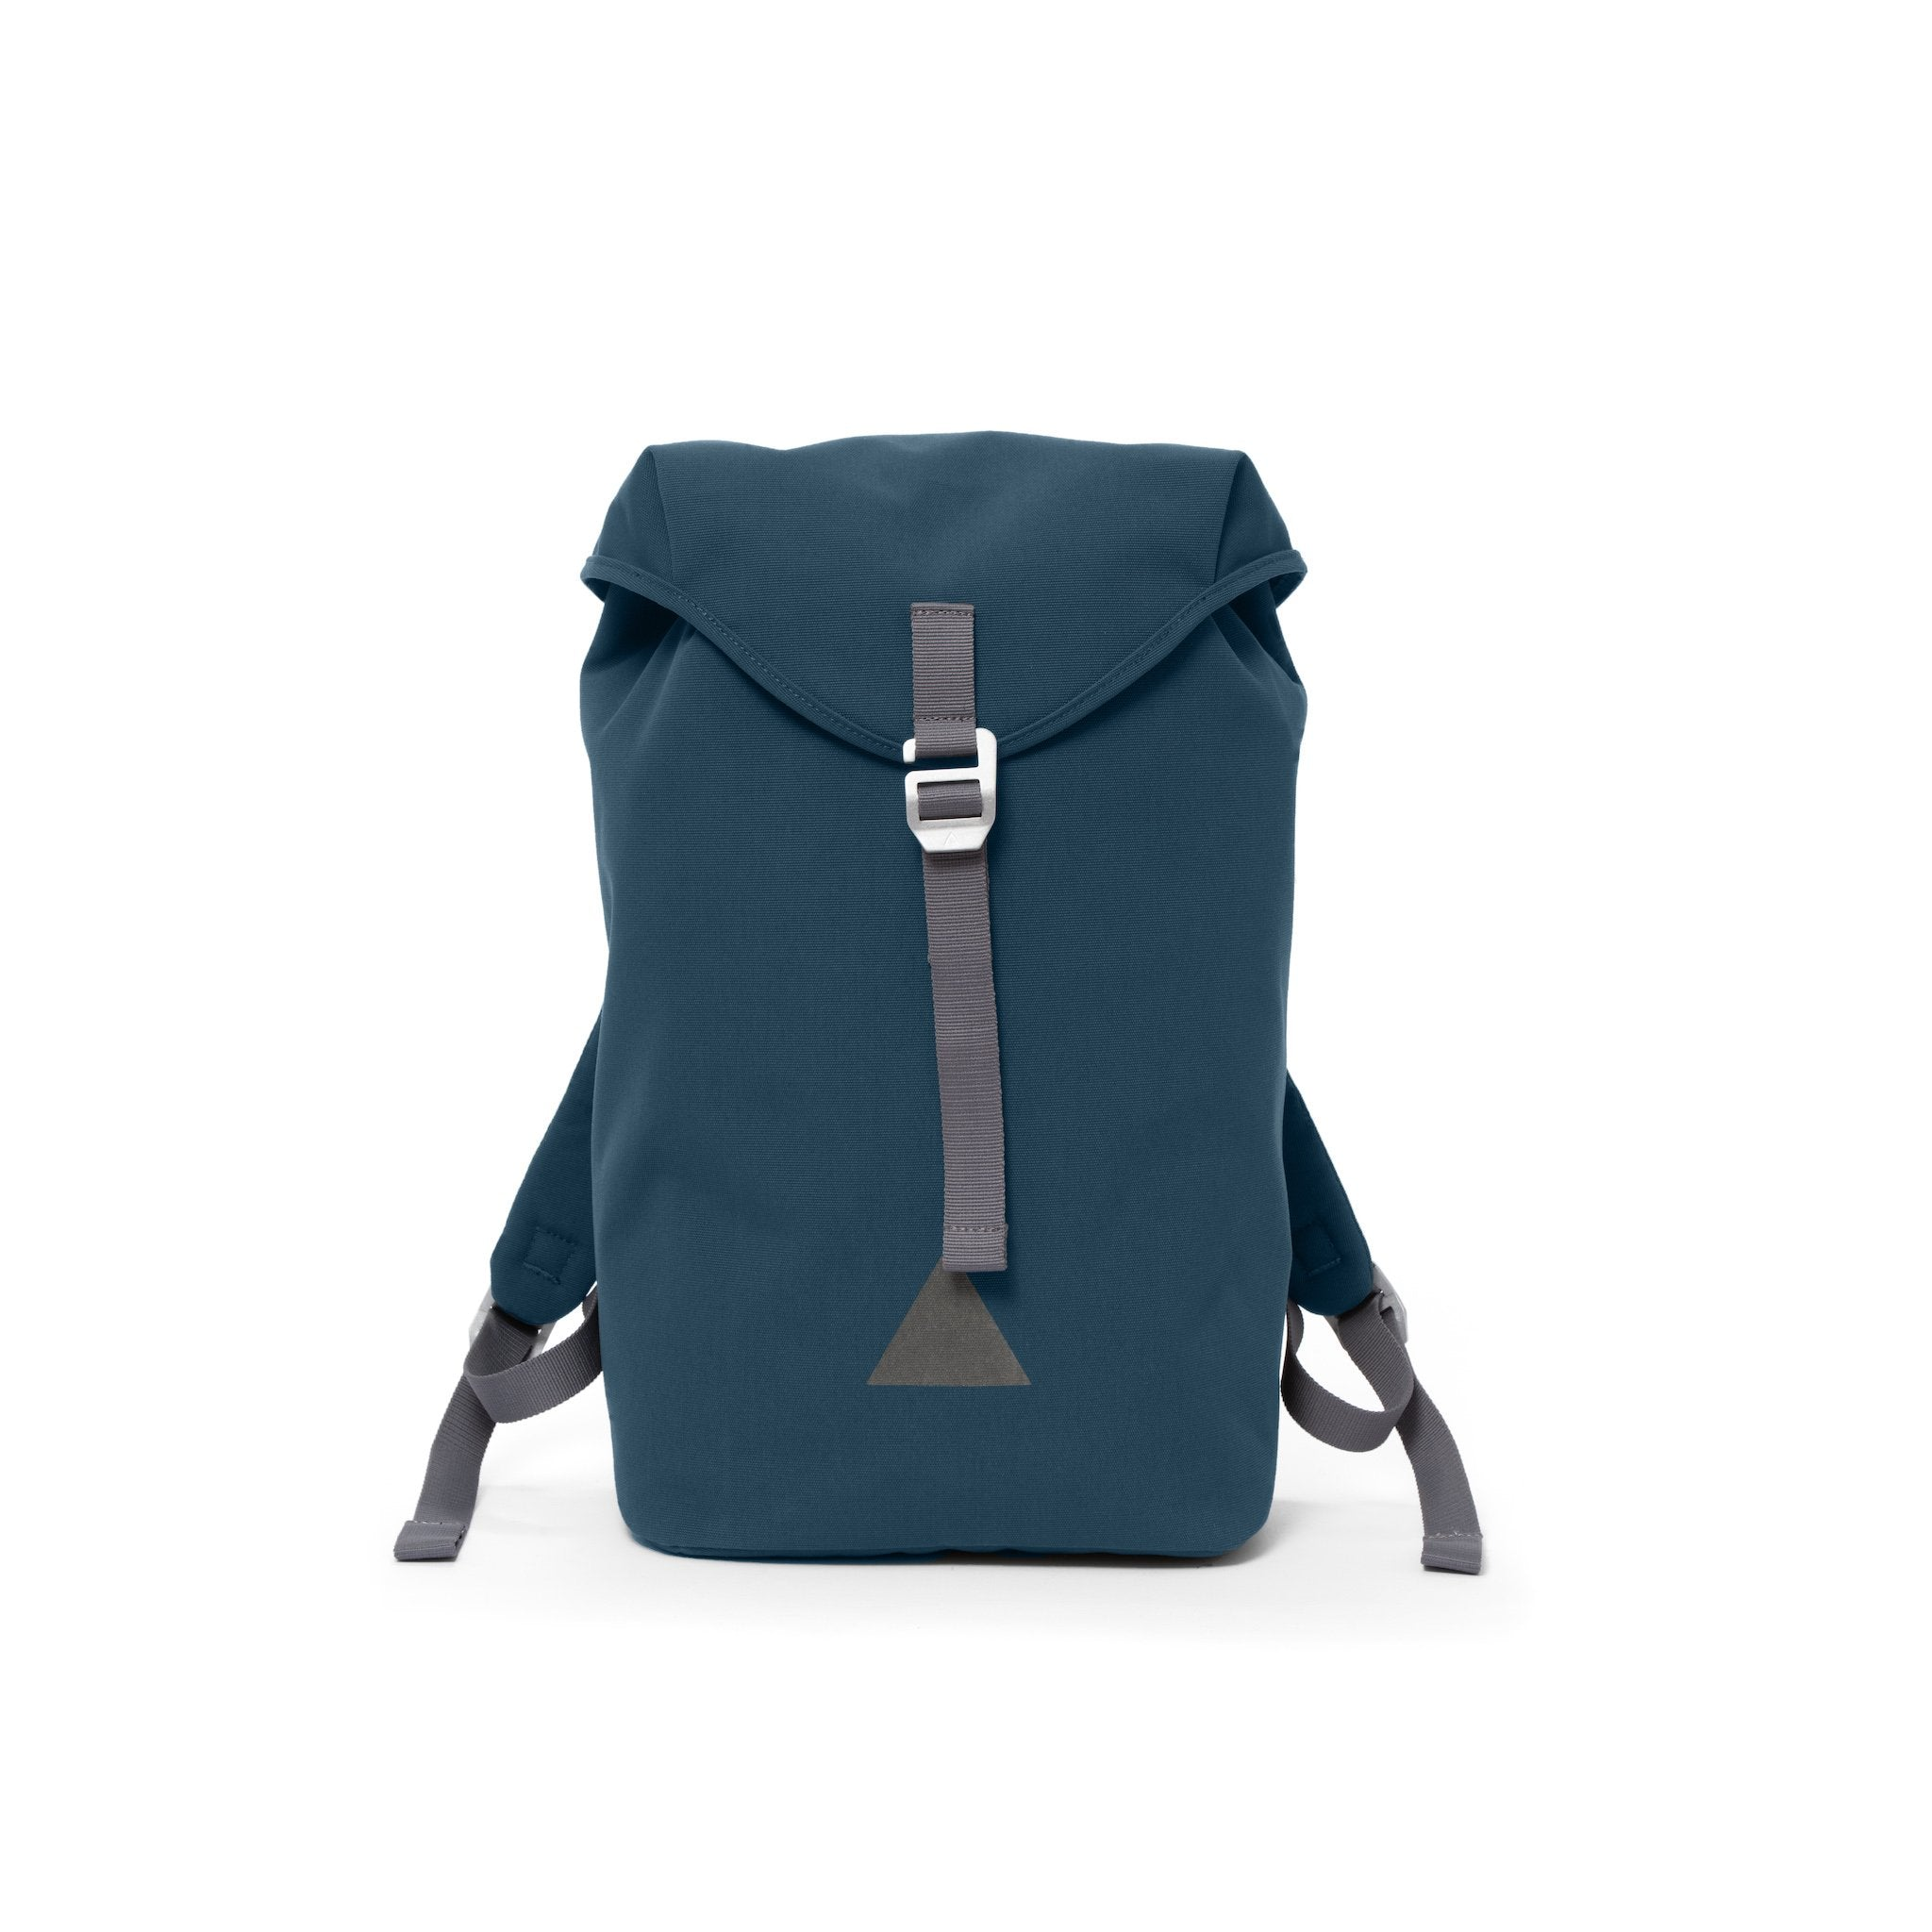 Blue canvas backpack with a flap closure and triangle logo.